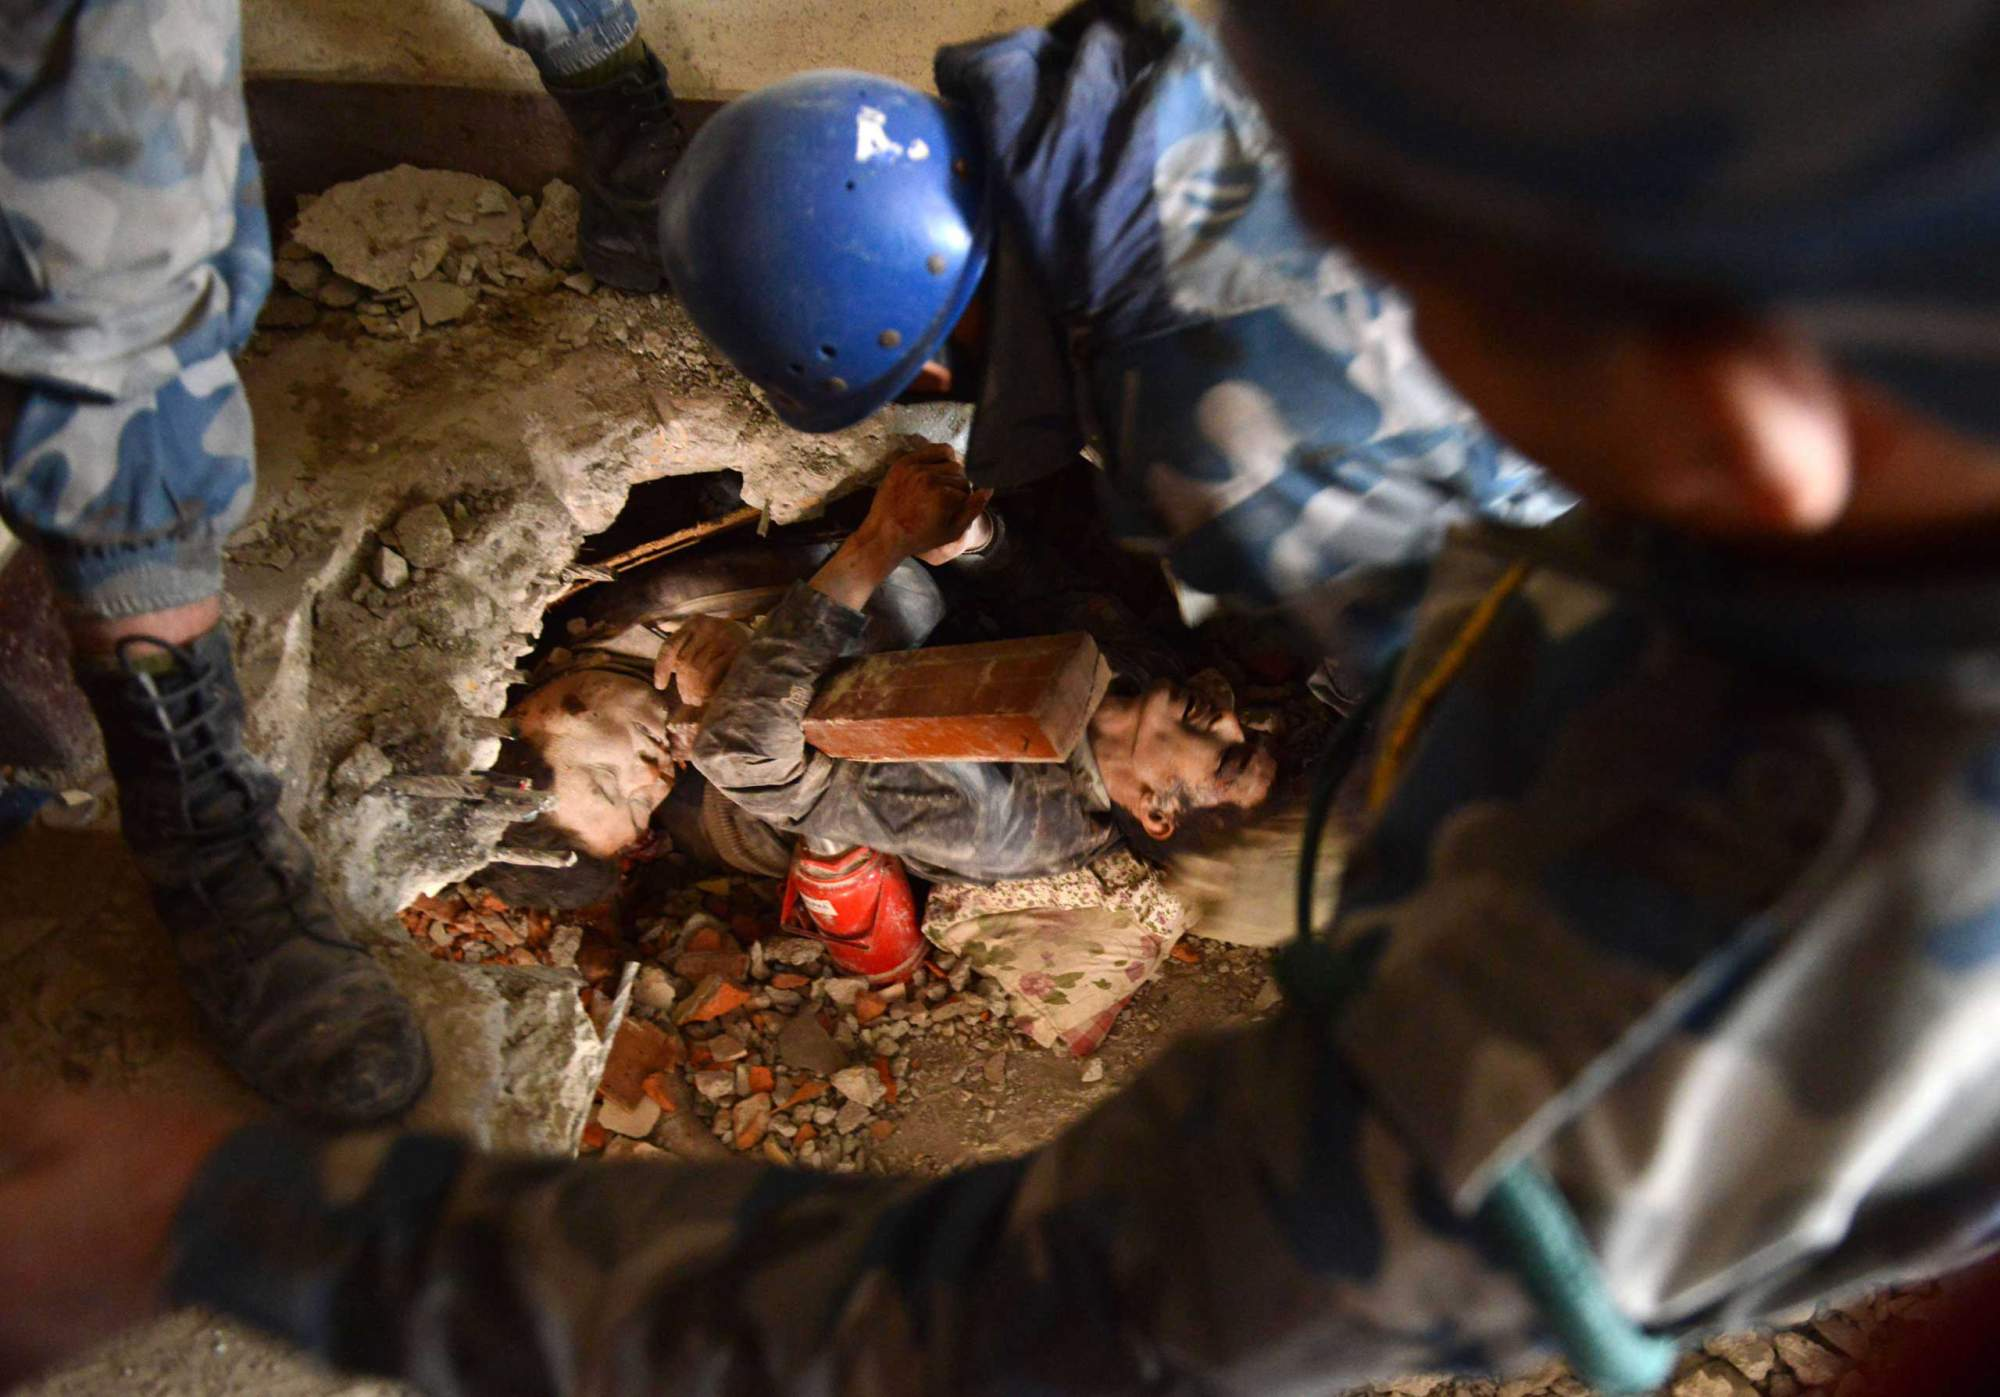 Nepalese rescue personnel help a trapped earthquake survivor, center right, as his friend lies dead next to him in Swayambhu, in Kathmandu on April 26, 2015.